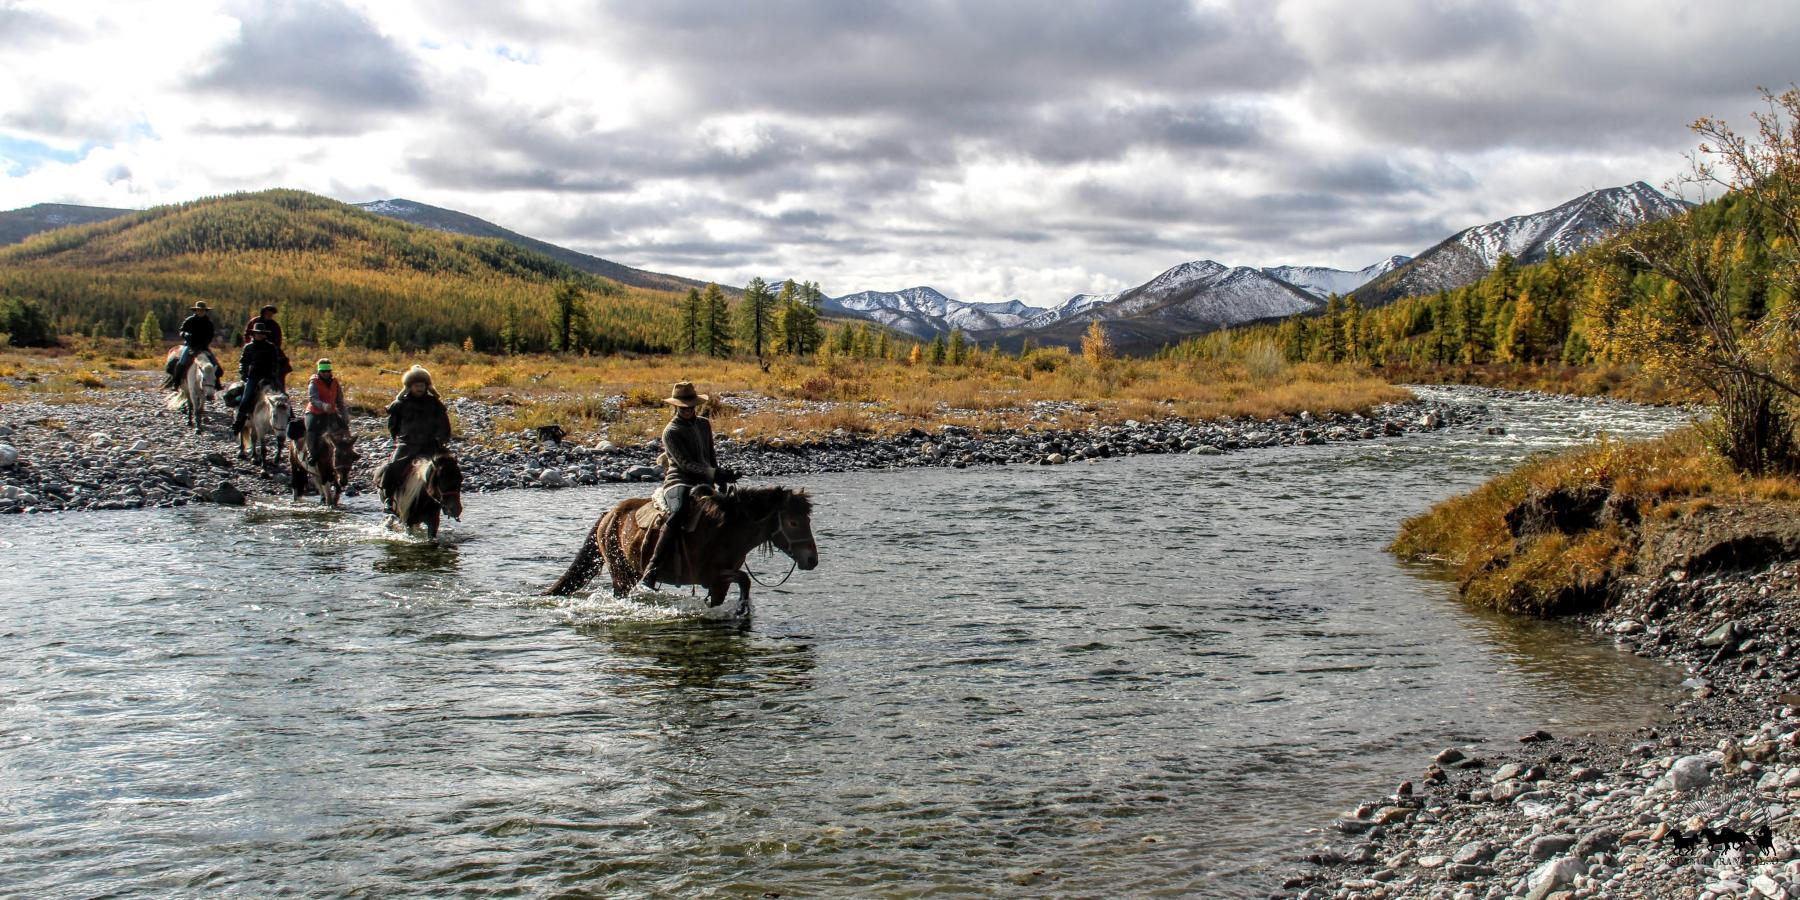 Crossing the river while horse trekking through northern Mongolia with Estancia Ranquilco